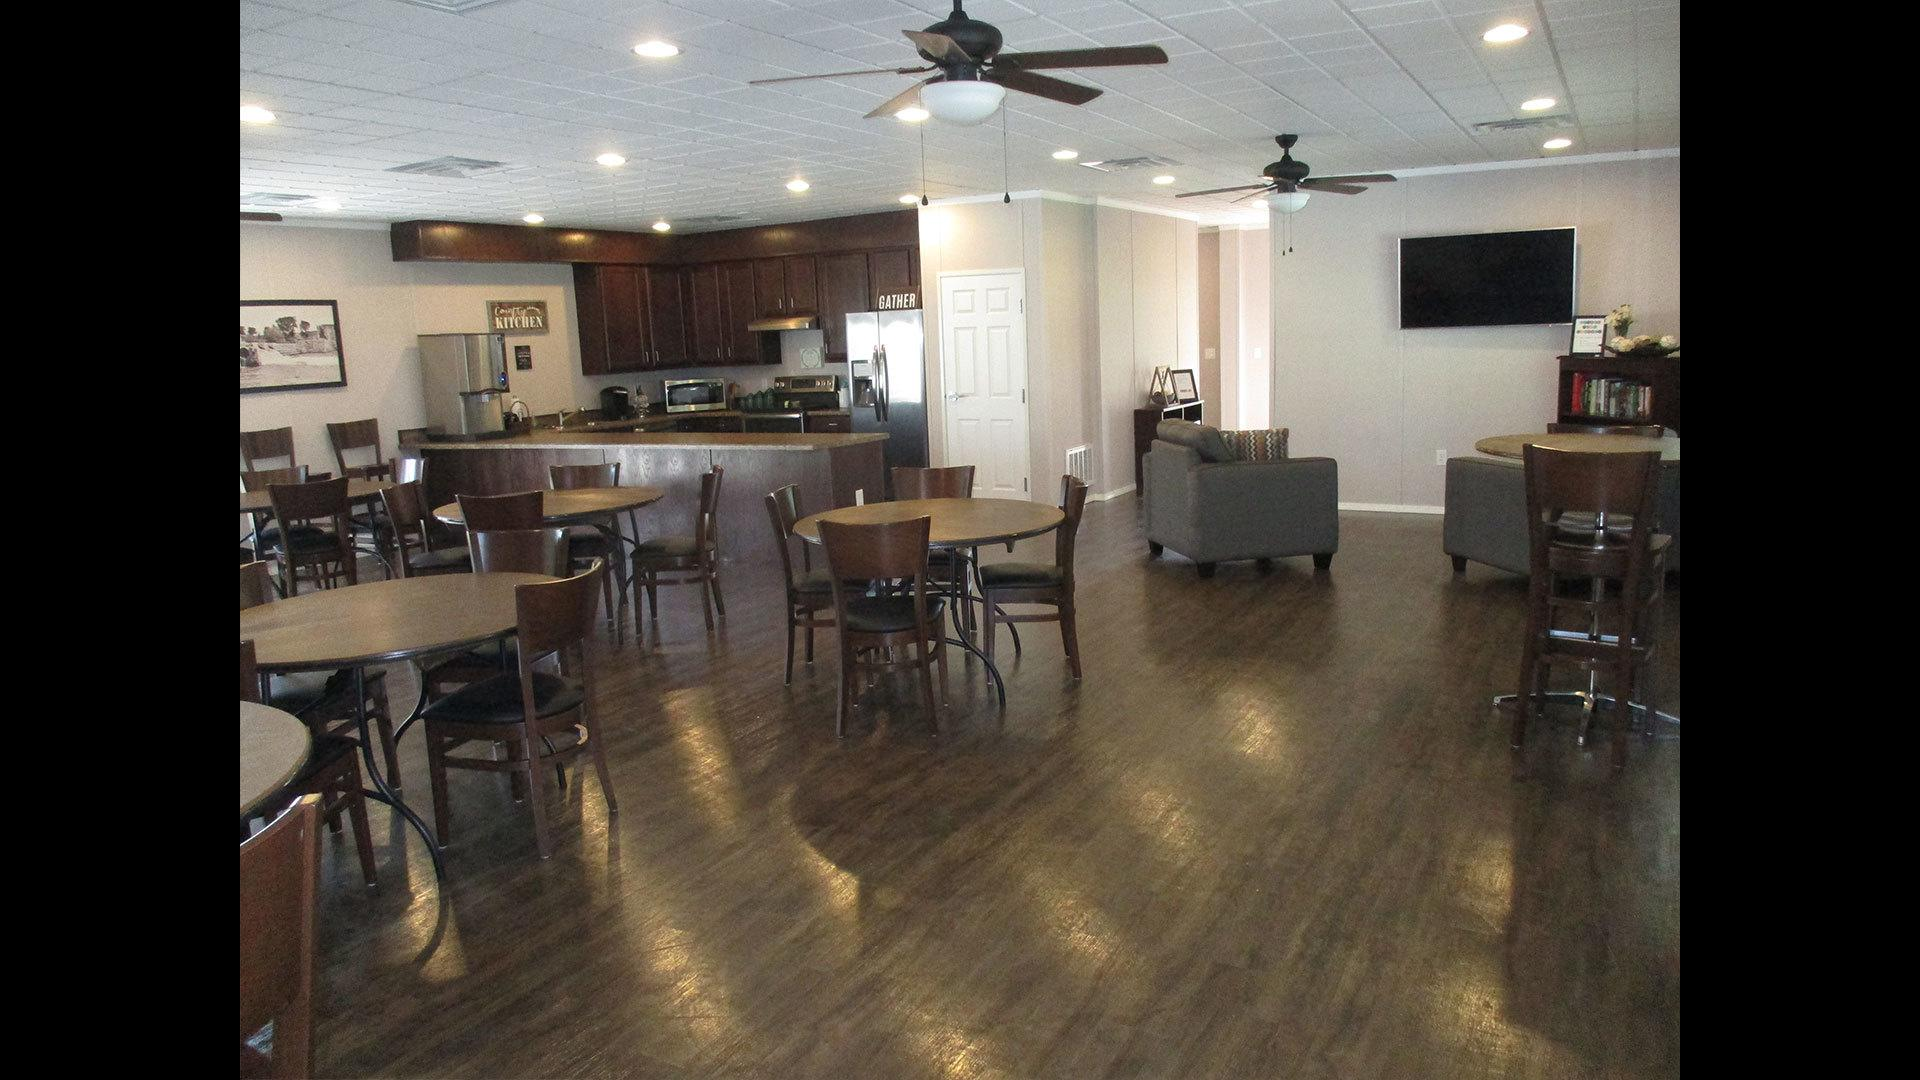 Comal Farms Manufactured Homes Community Clubhouse Interior in New Braunfels, TX